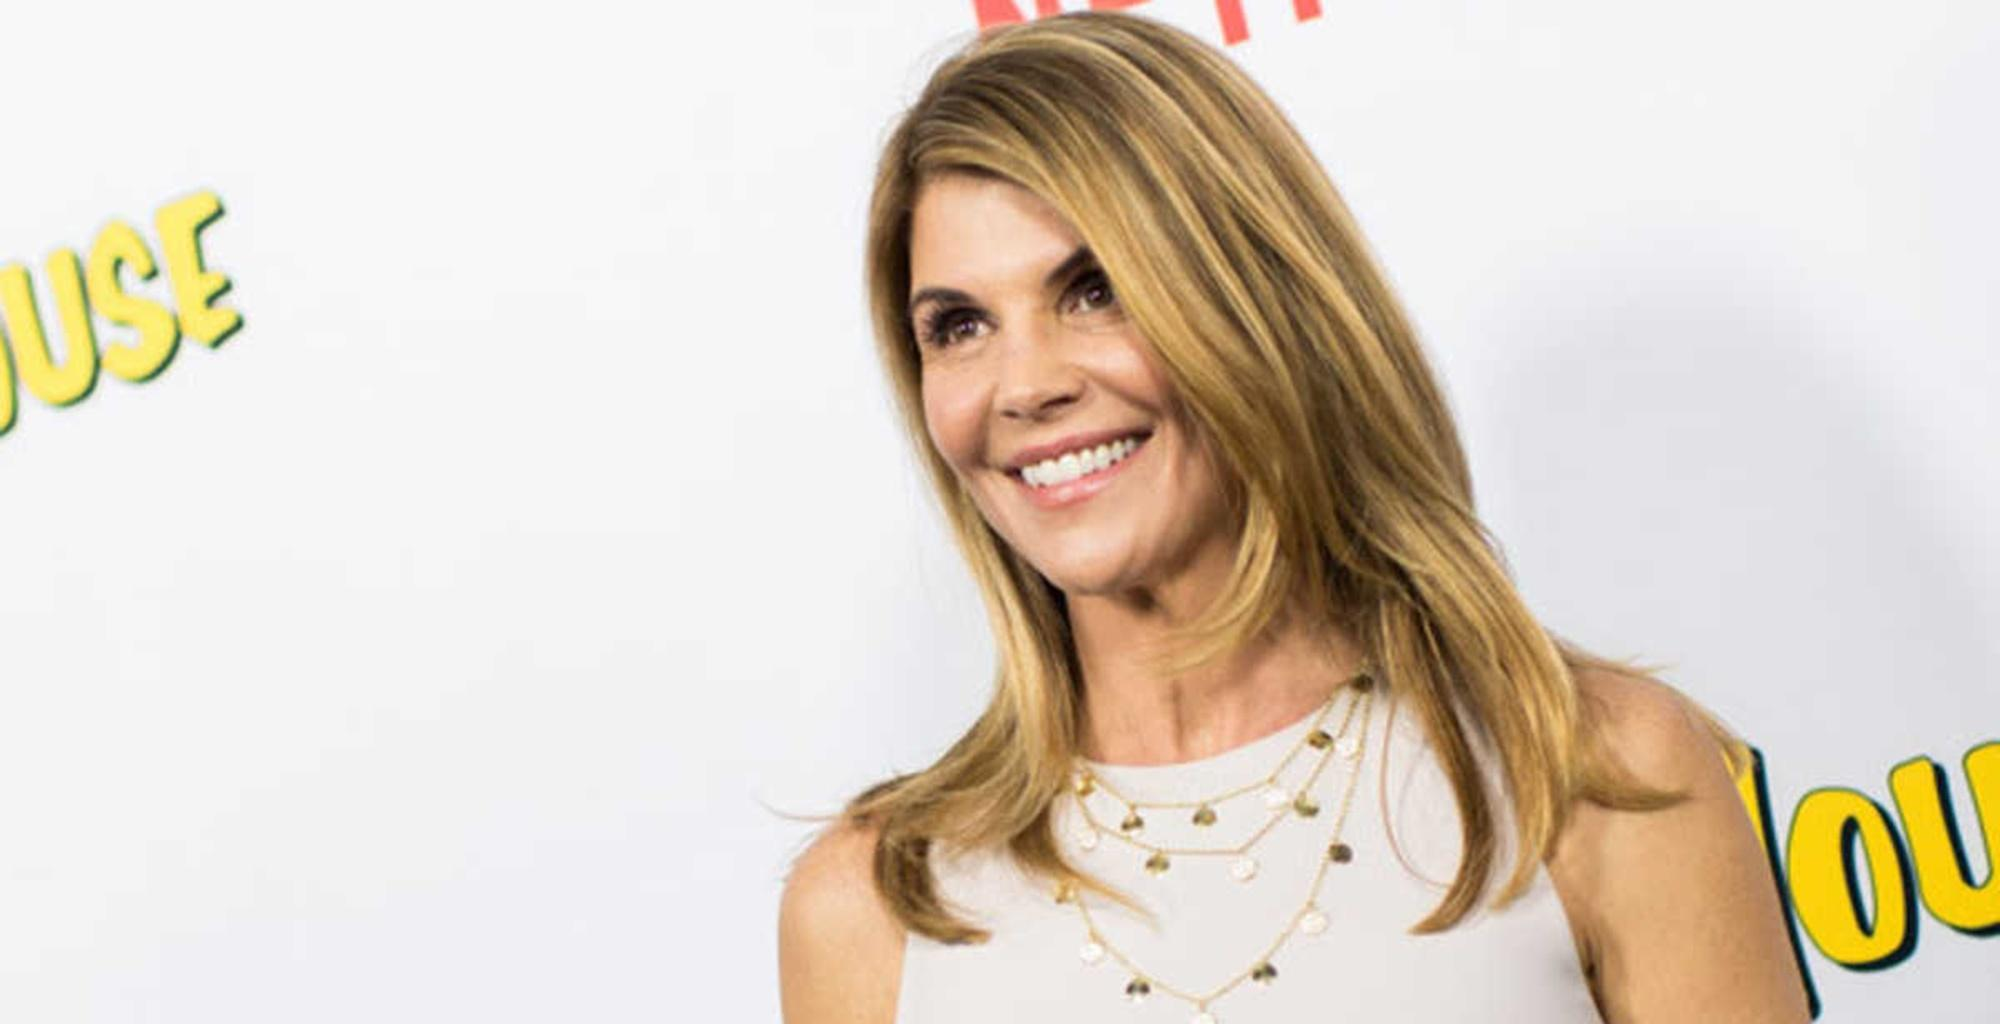 Lori Loughlin And Mossimo Giannulli Are Stressing Over Upcoming Court Hearing -- They Want This To Be Done